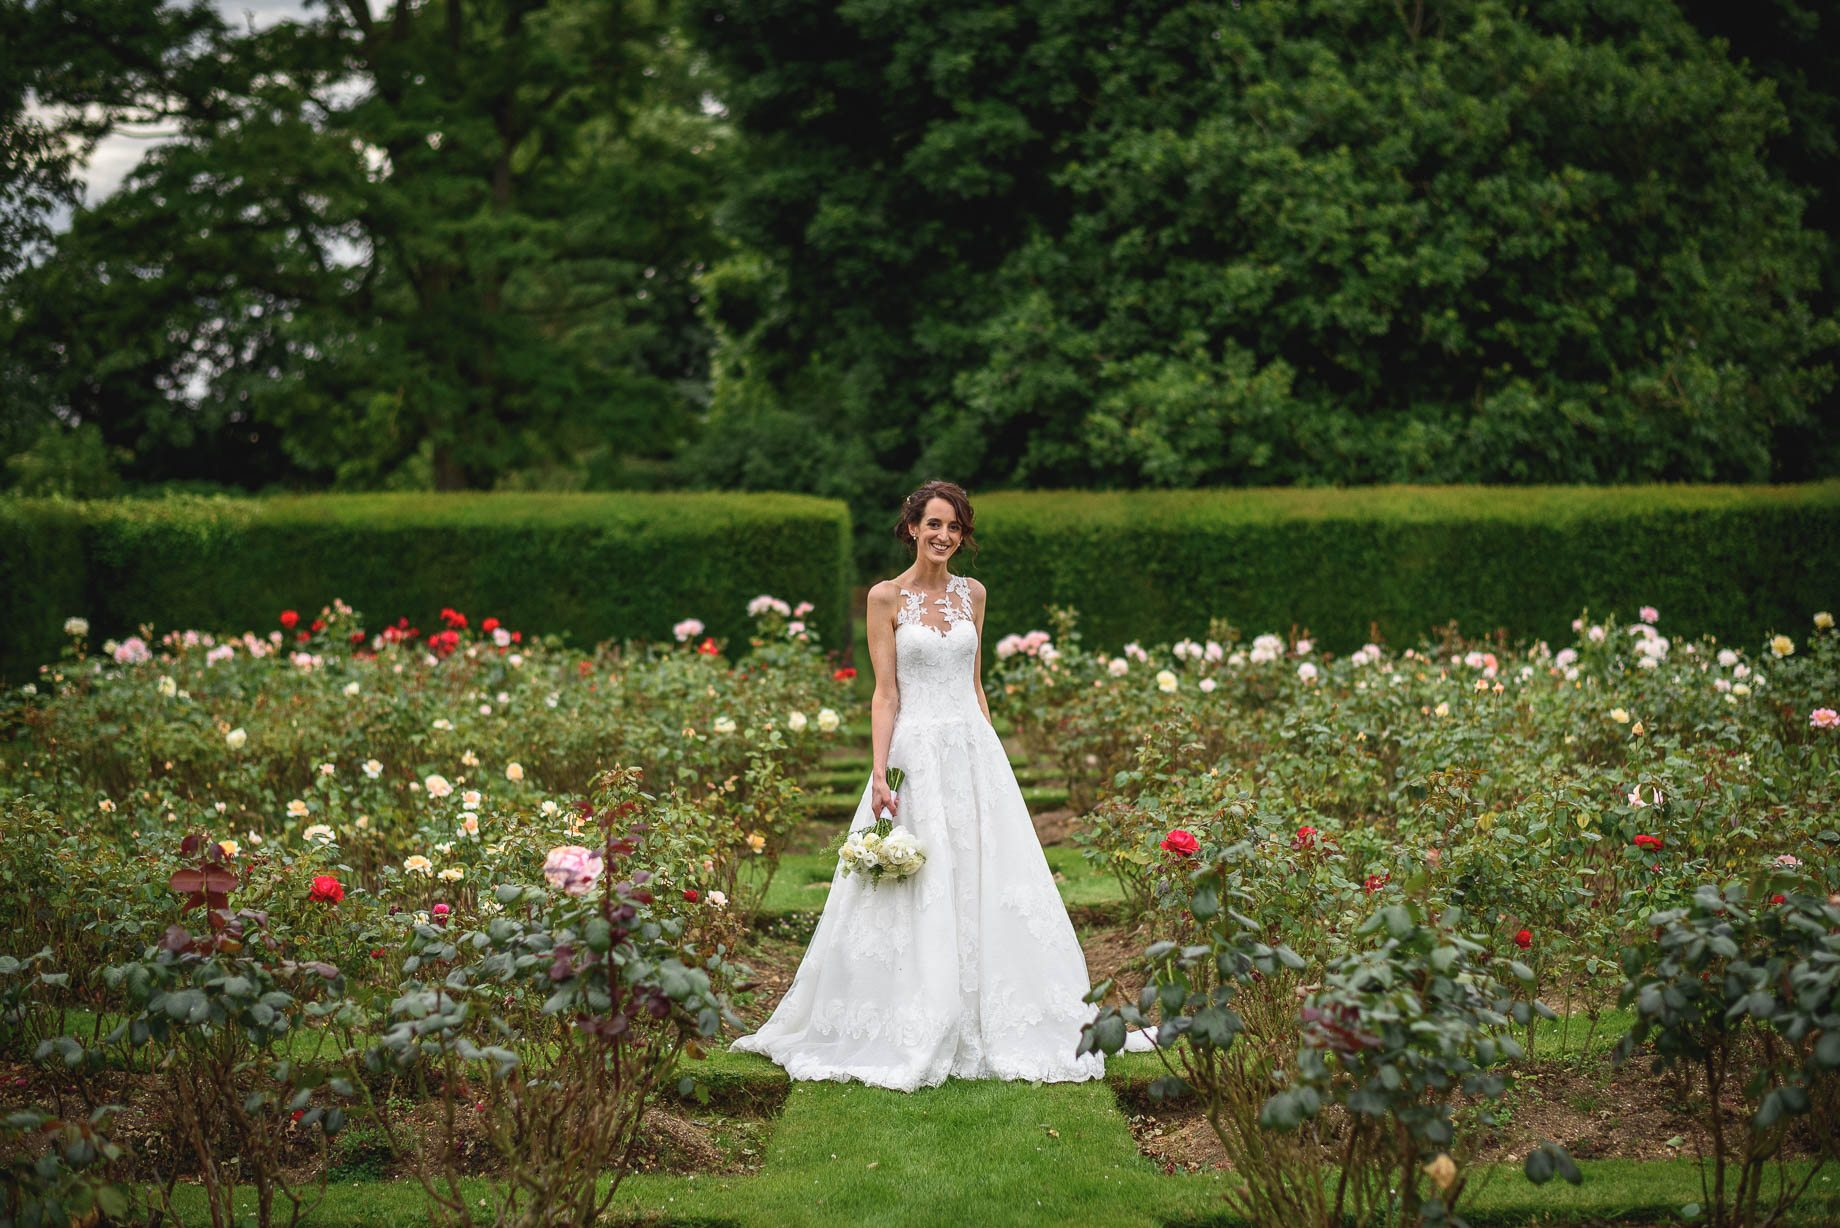 Hertfordshire wedding photography - Sarah and Stephen by Guy Collier Photography (136 of 161)